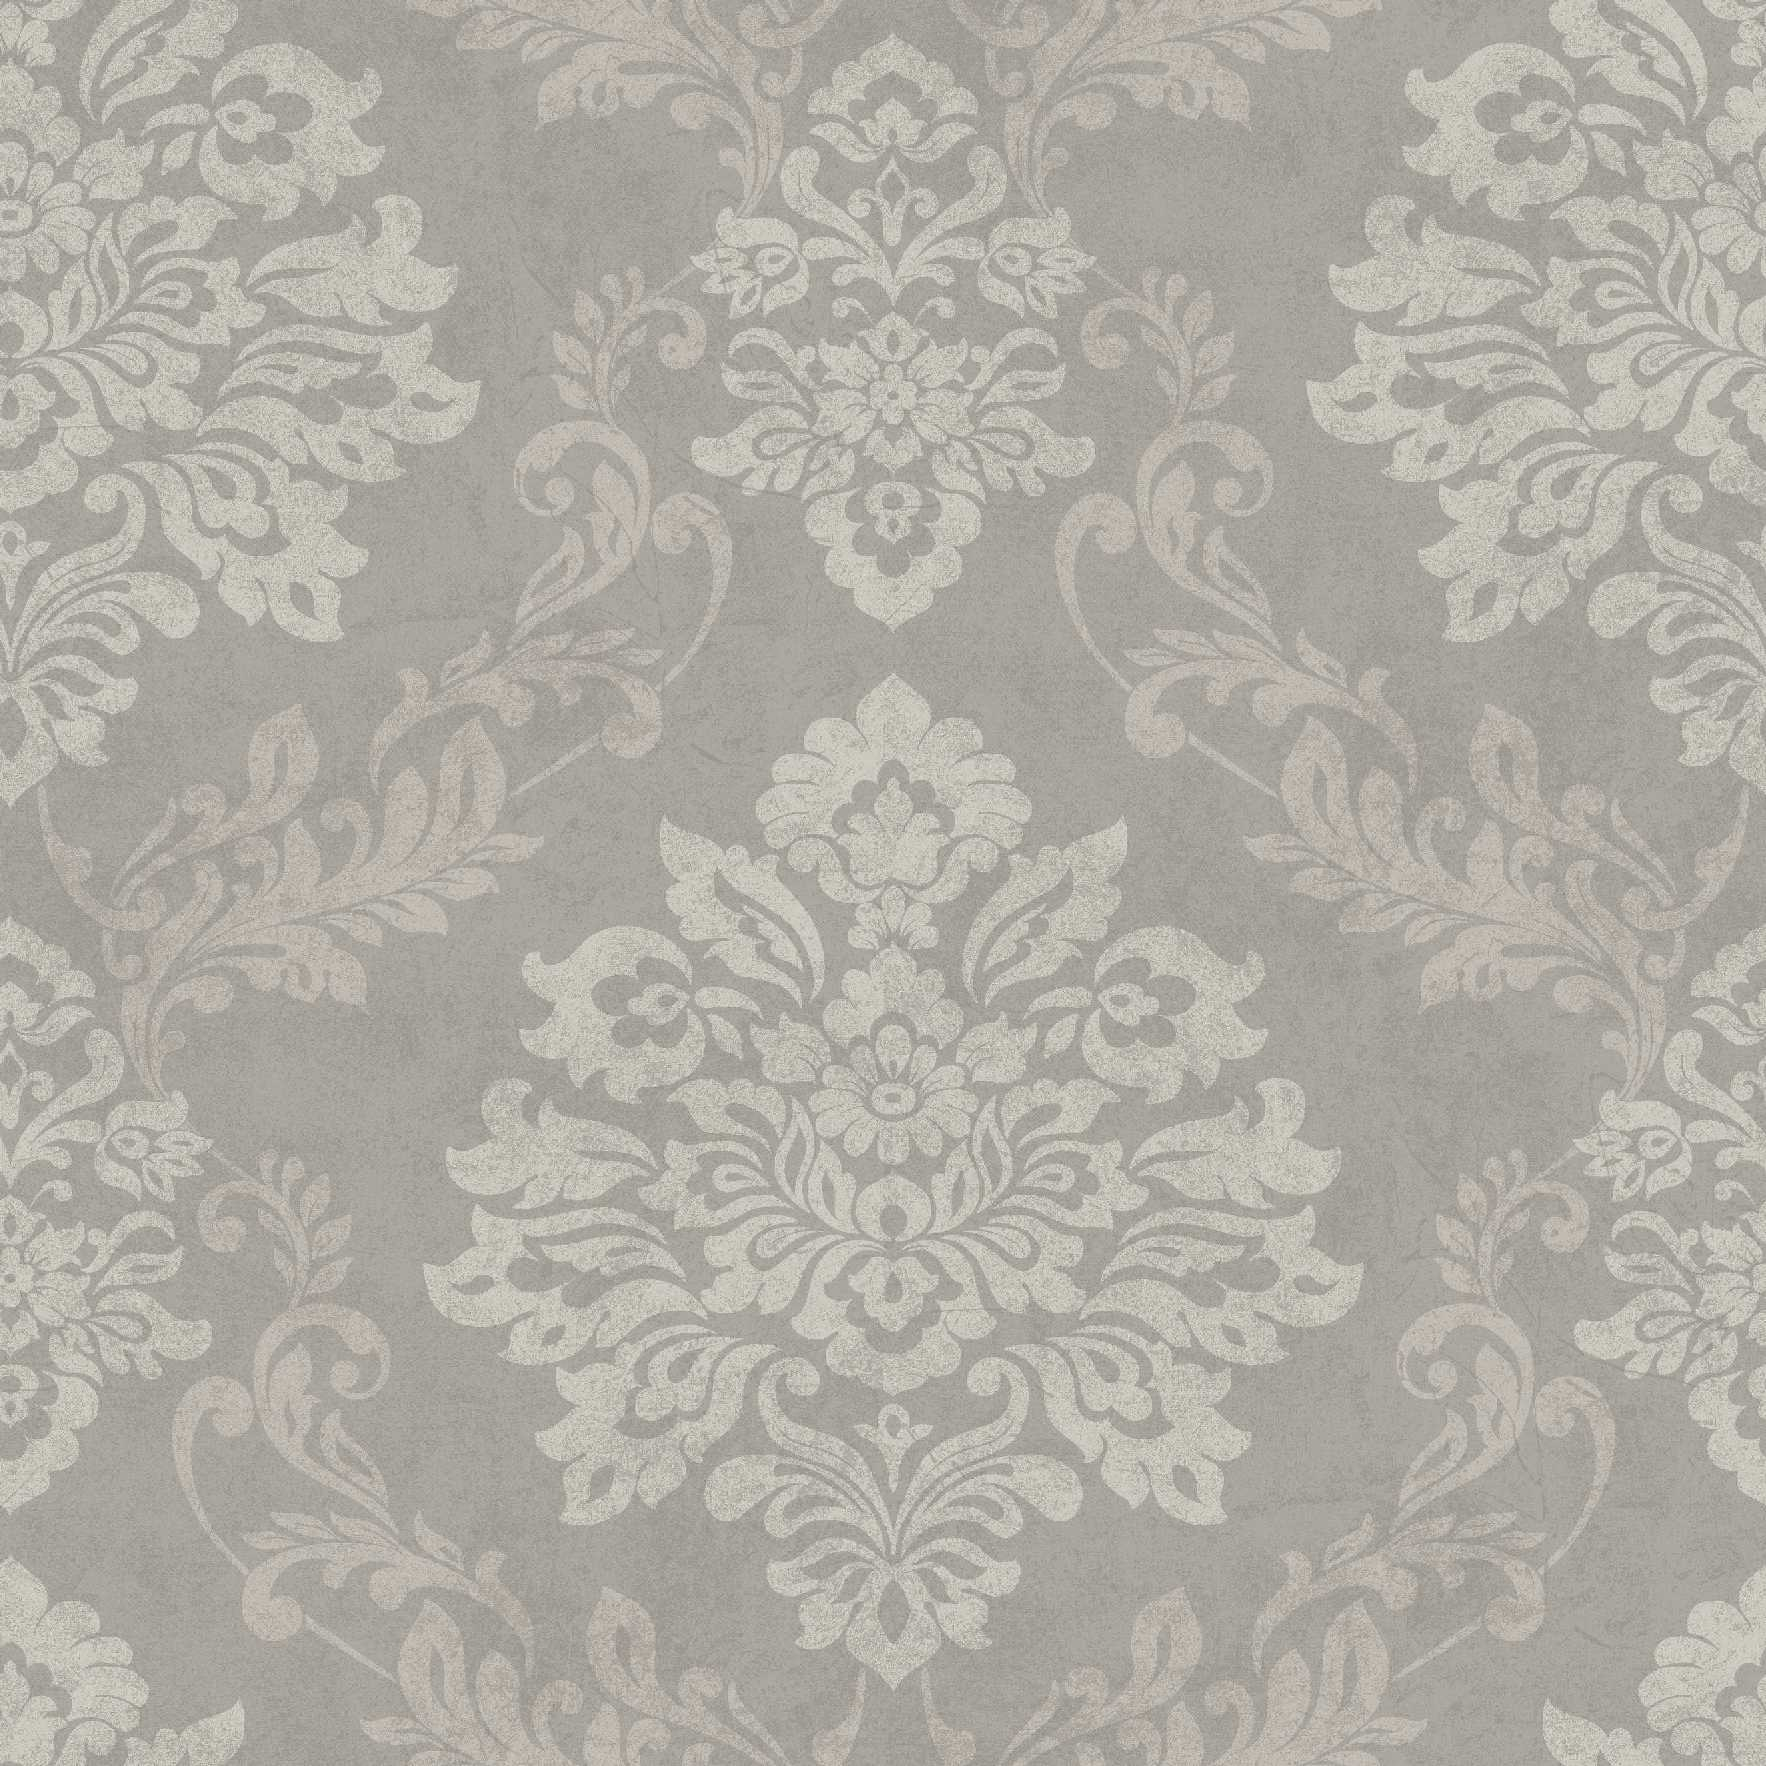 Arthouse Palazzo Pebble Wallpaper 290402 | Low Cost Wallpaper